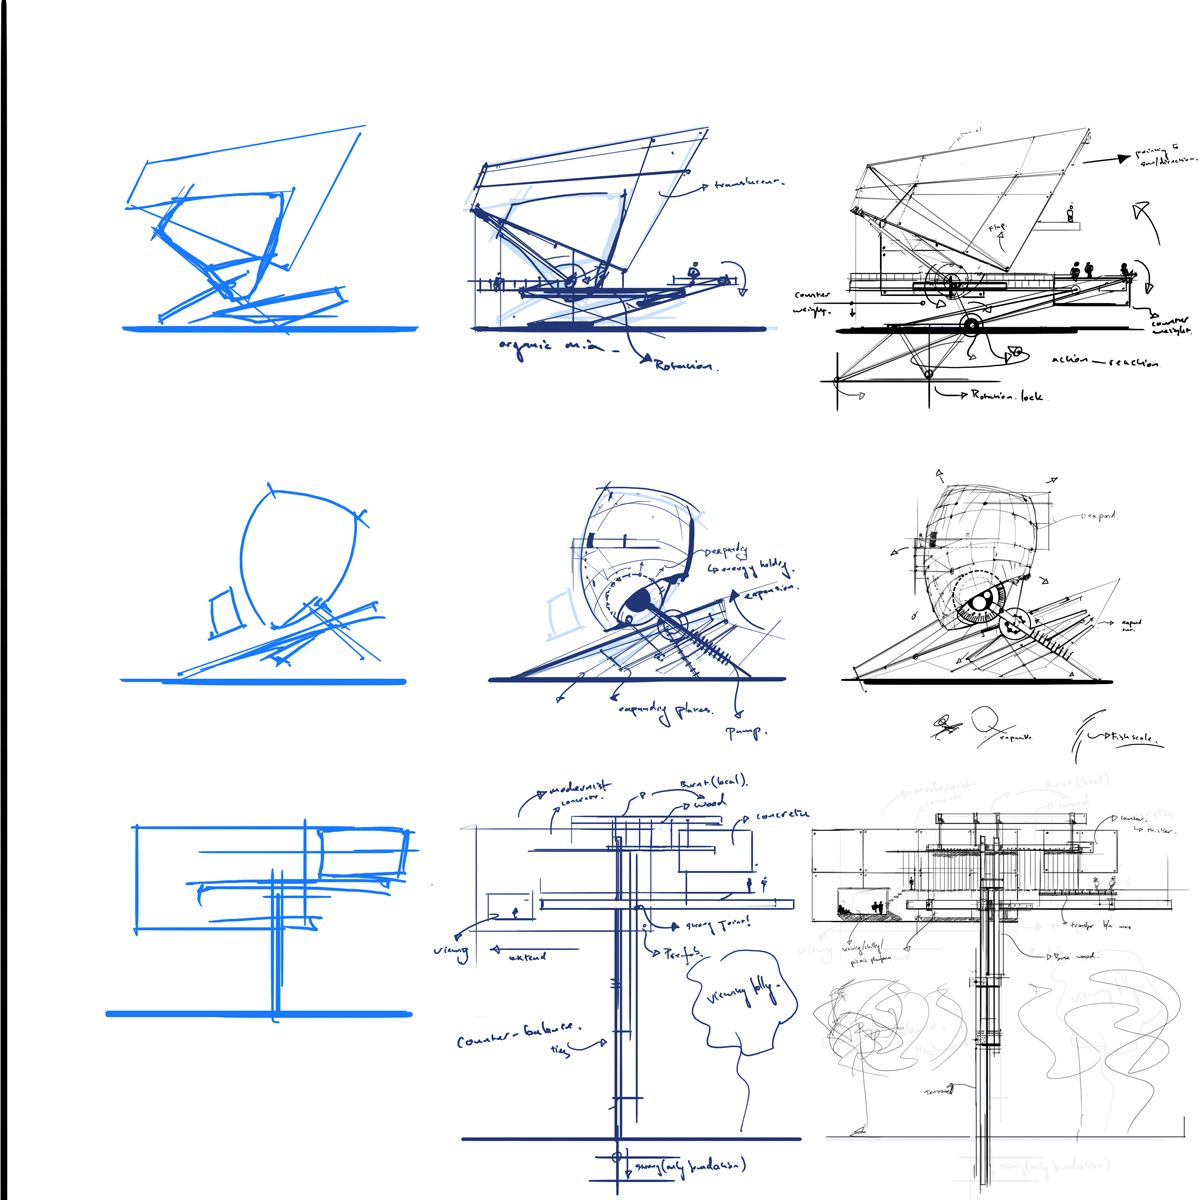 Architectural Concept Ideas Starting With Basic Shapes ??